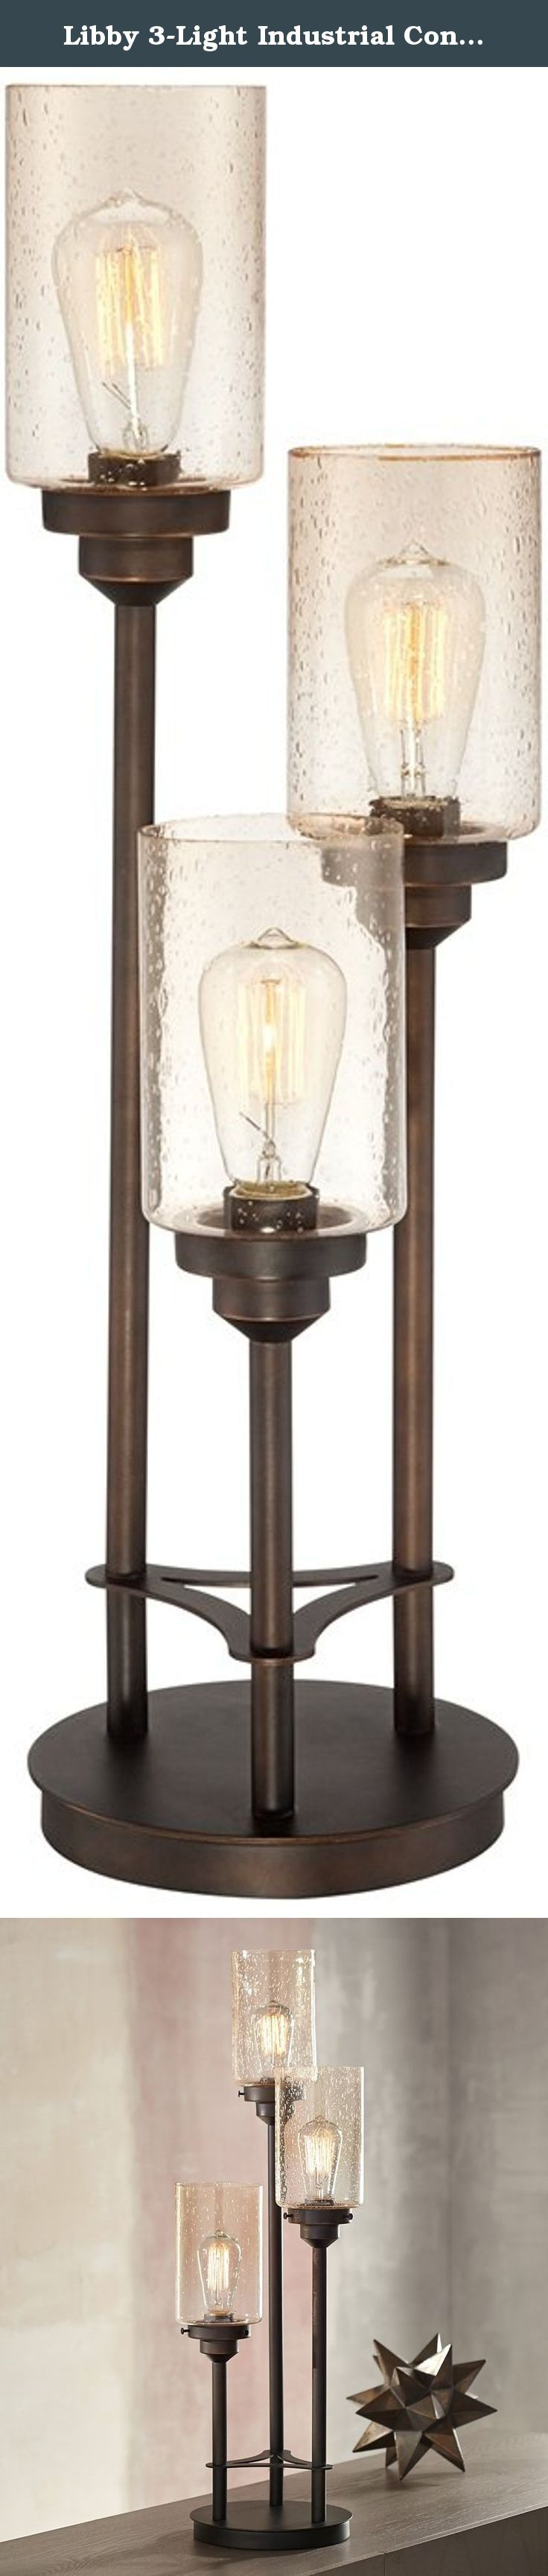 Libby 3-Light Industrial Console Lamp with Edison Bulbs. Add vintage industrial style to your home with this three tiered console lamp. The design features three bronze finish pillars at varying levels and beautiful amber seeded glass shades. Three antique-look Edison style bulbs are included to reinforce this eye-catching design's stylish and industrial feel. - Libby 3-Light Console Lamp. - Amber seeded glass shades. - Round base with three lamp arms. - Metal construction. - Bronze…